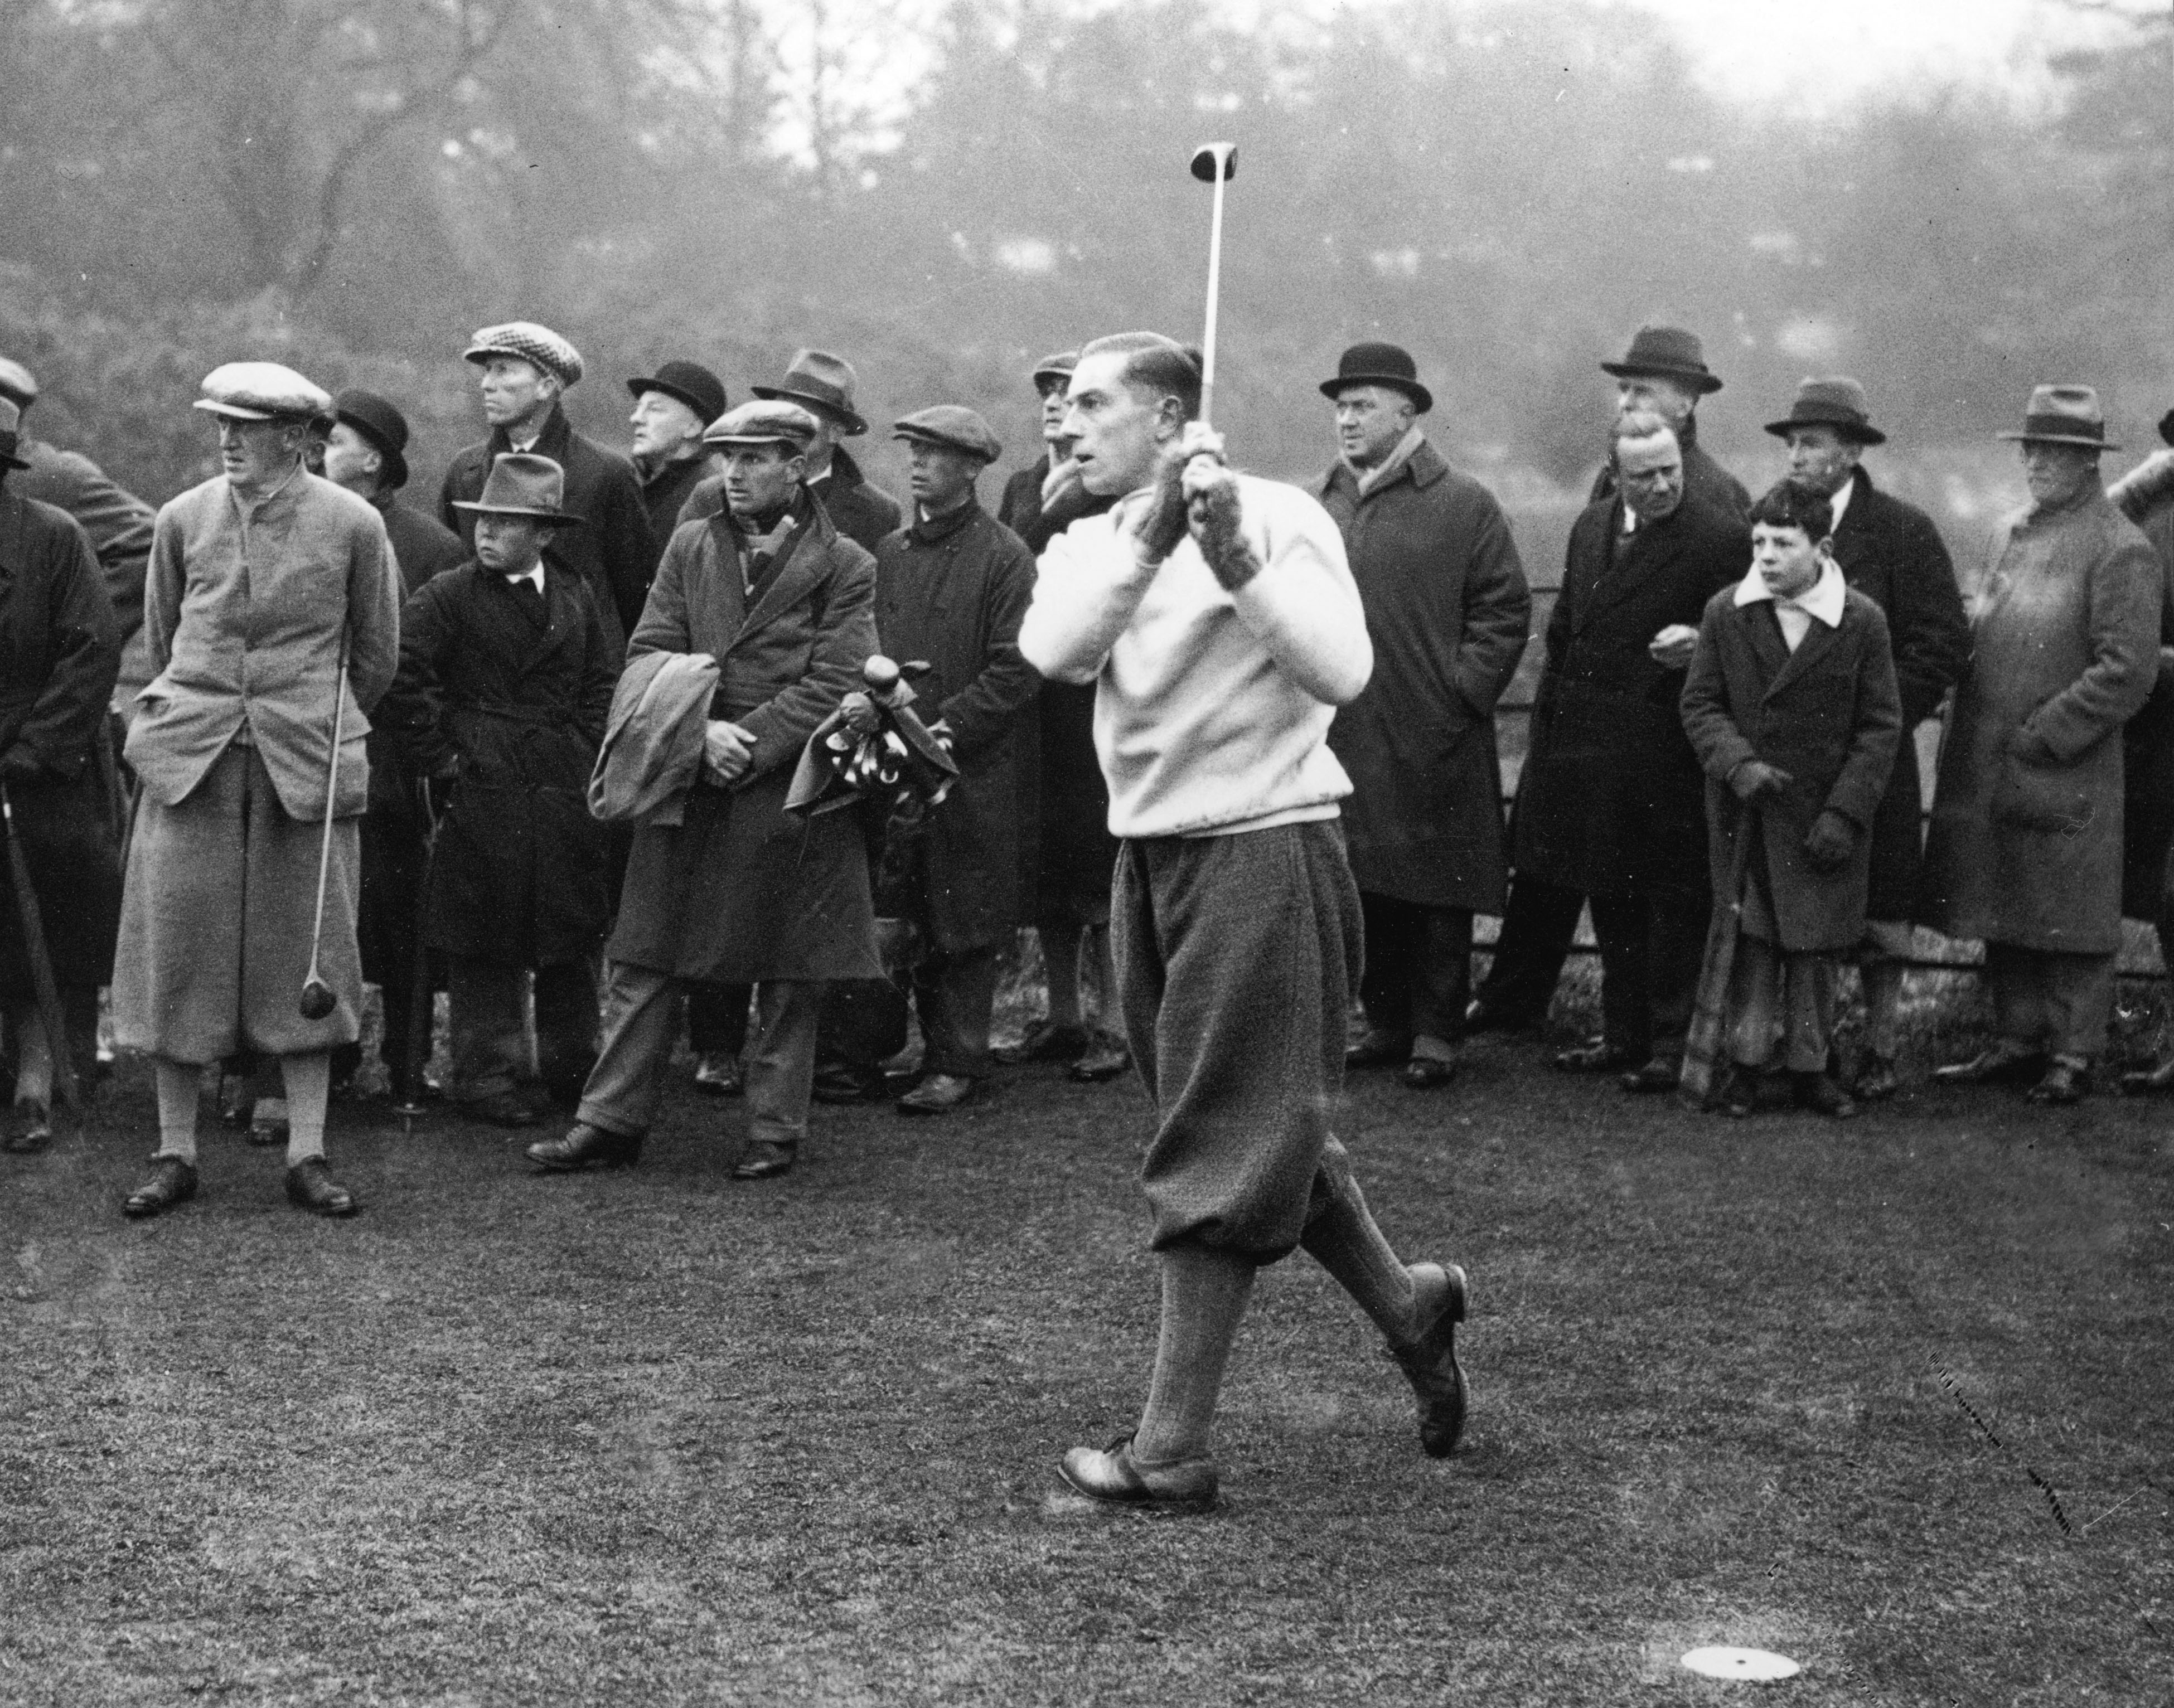 The Ryder Cup was postponed due to WWII from 1937-1947.